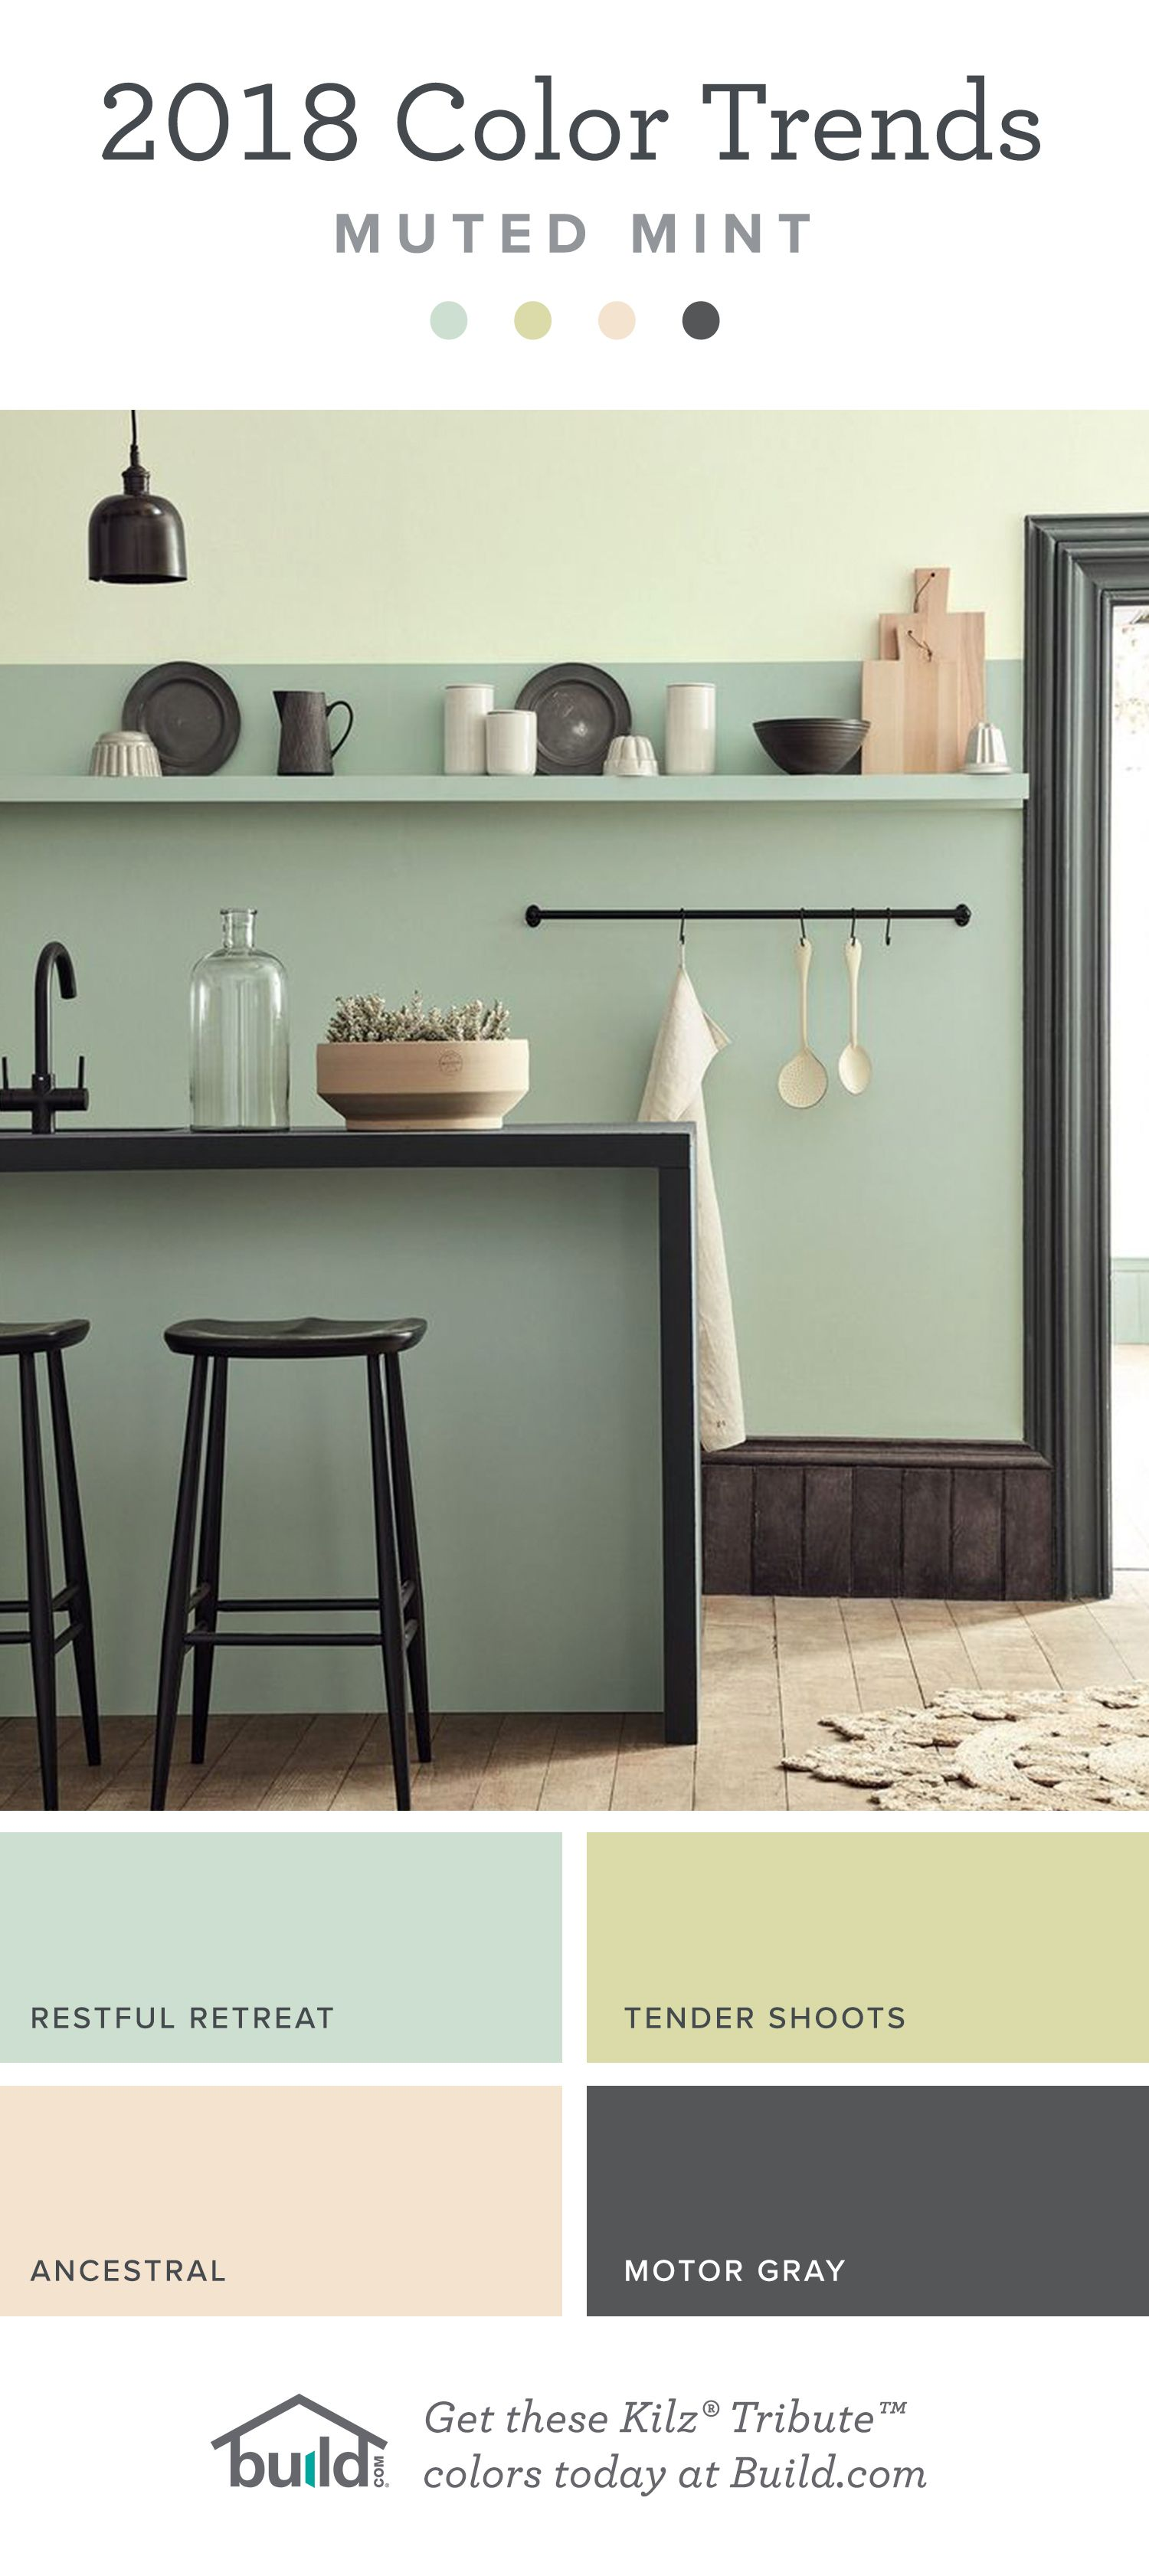 2018 Color Trends Muted Mint